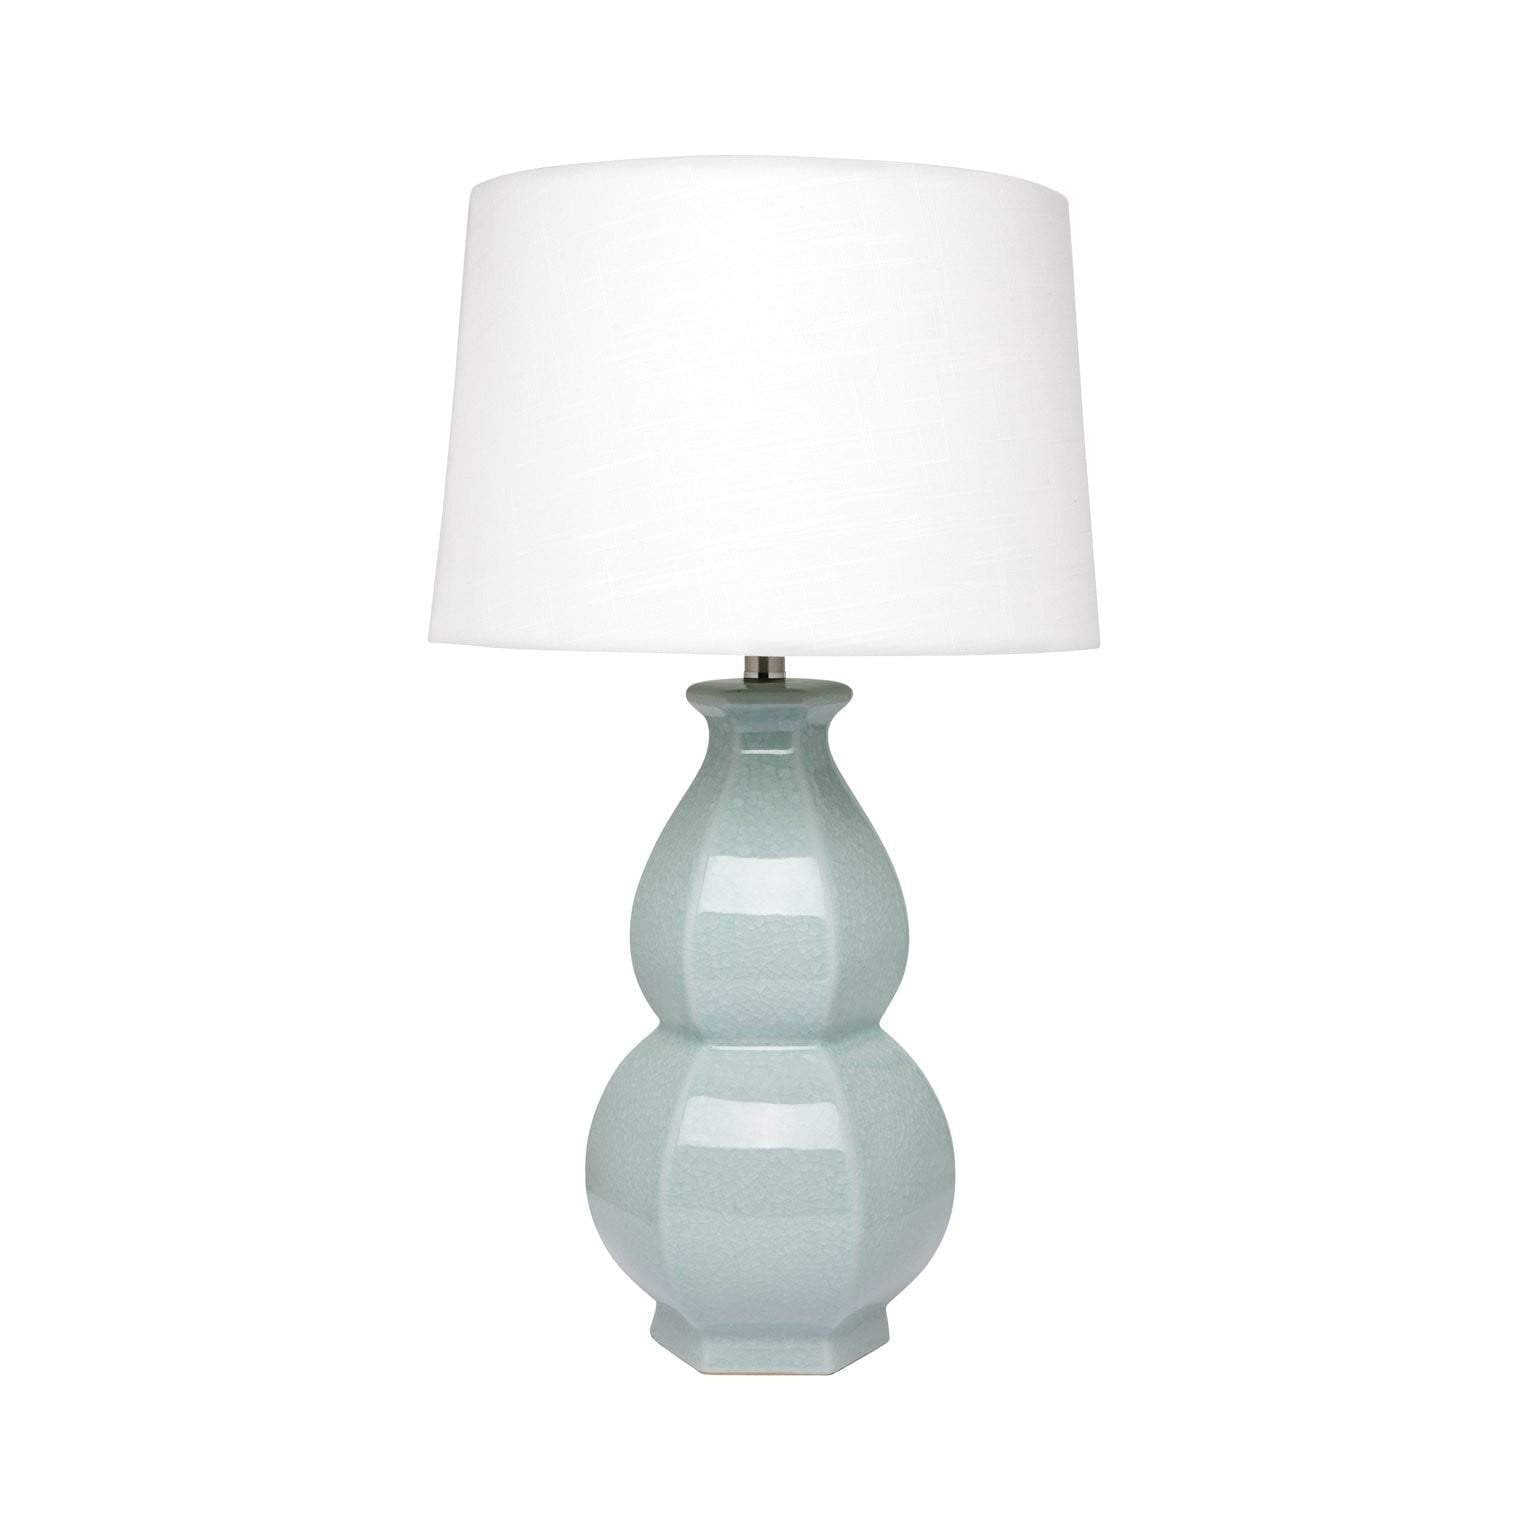 Erica Ceramic Table Lamp - Duck Egg Blue